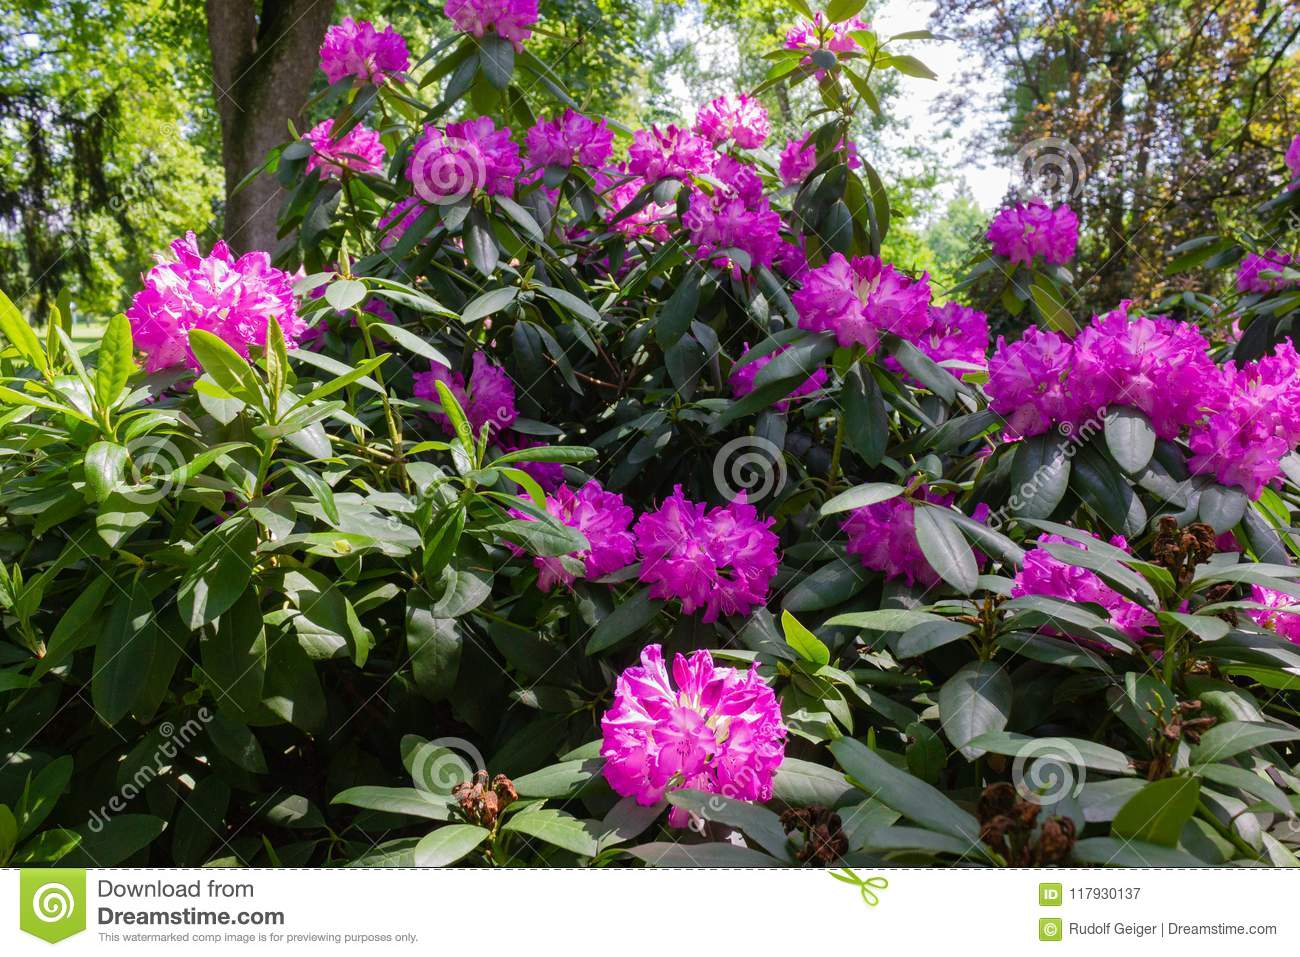 City Pink Park In Hortensia Historical Image Green Stock Of TTtO7wq